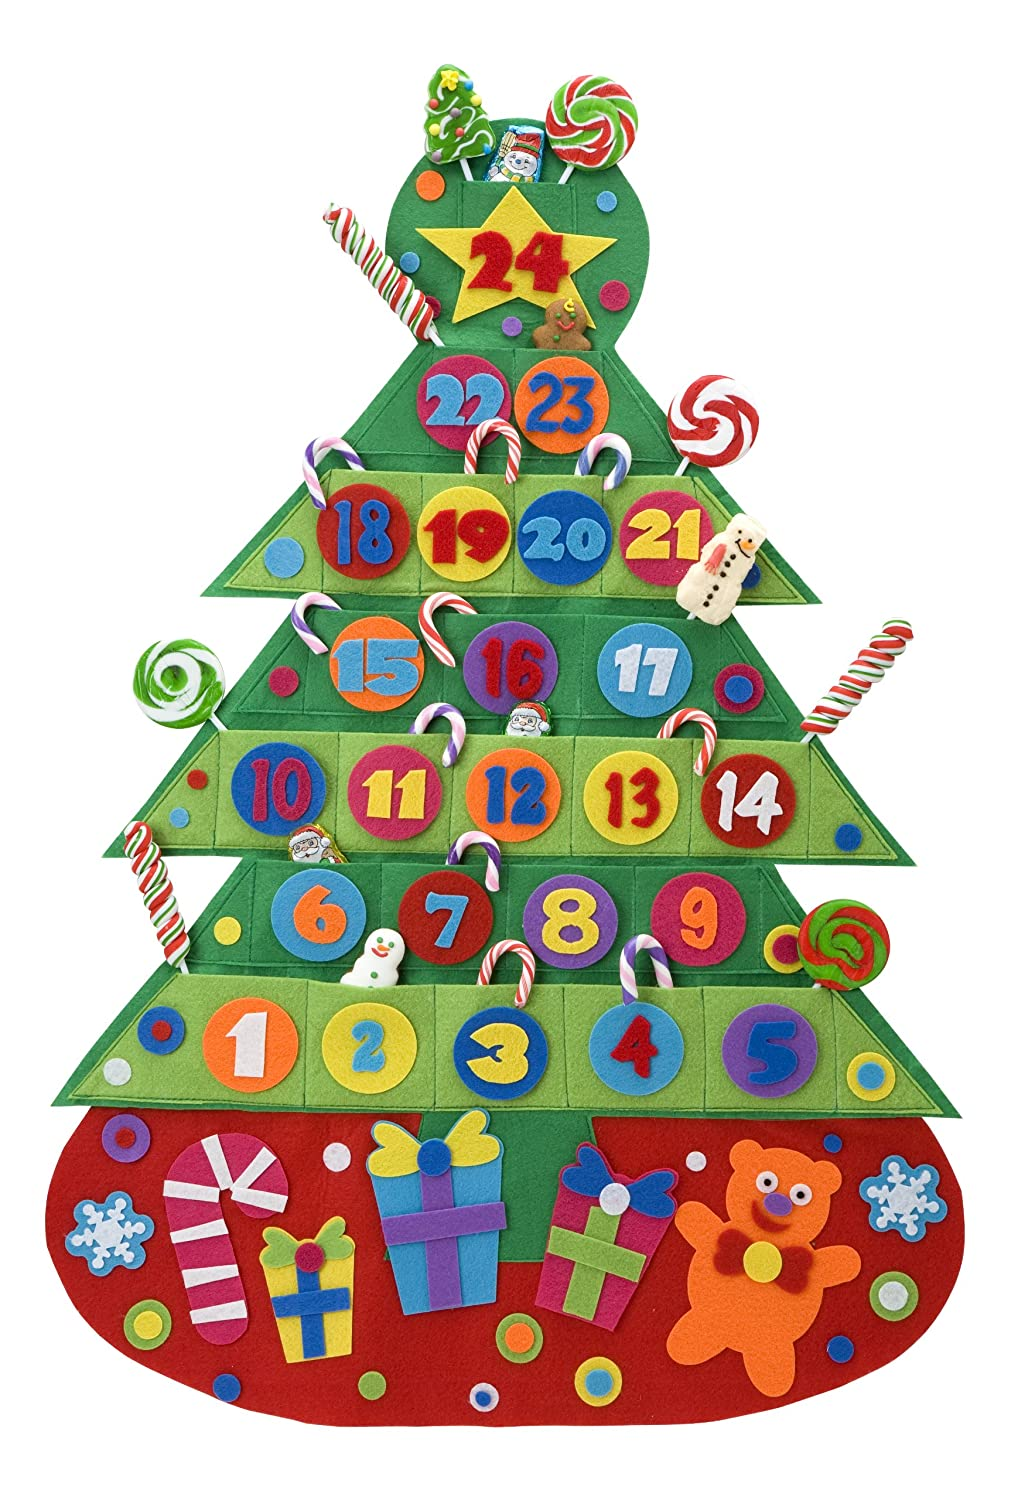 advent calendar kits for kids to make or decorate